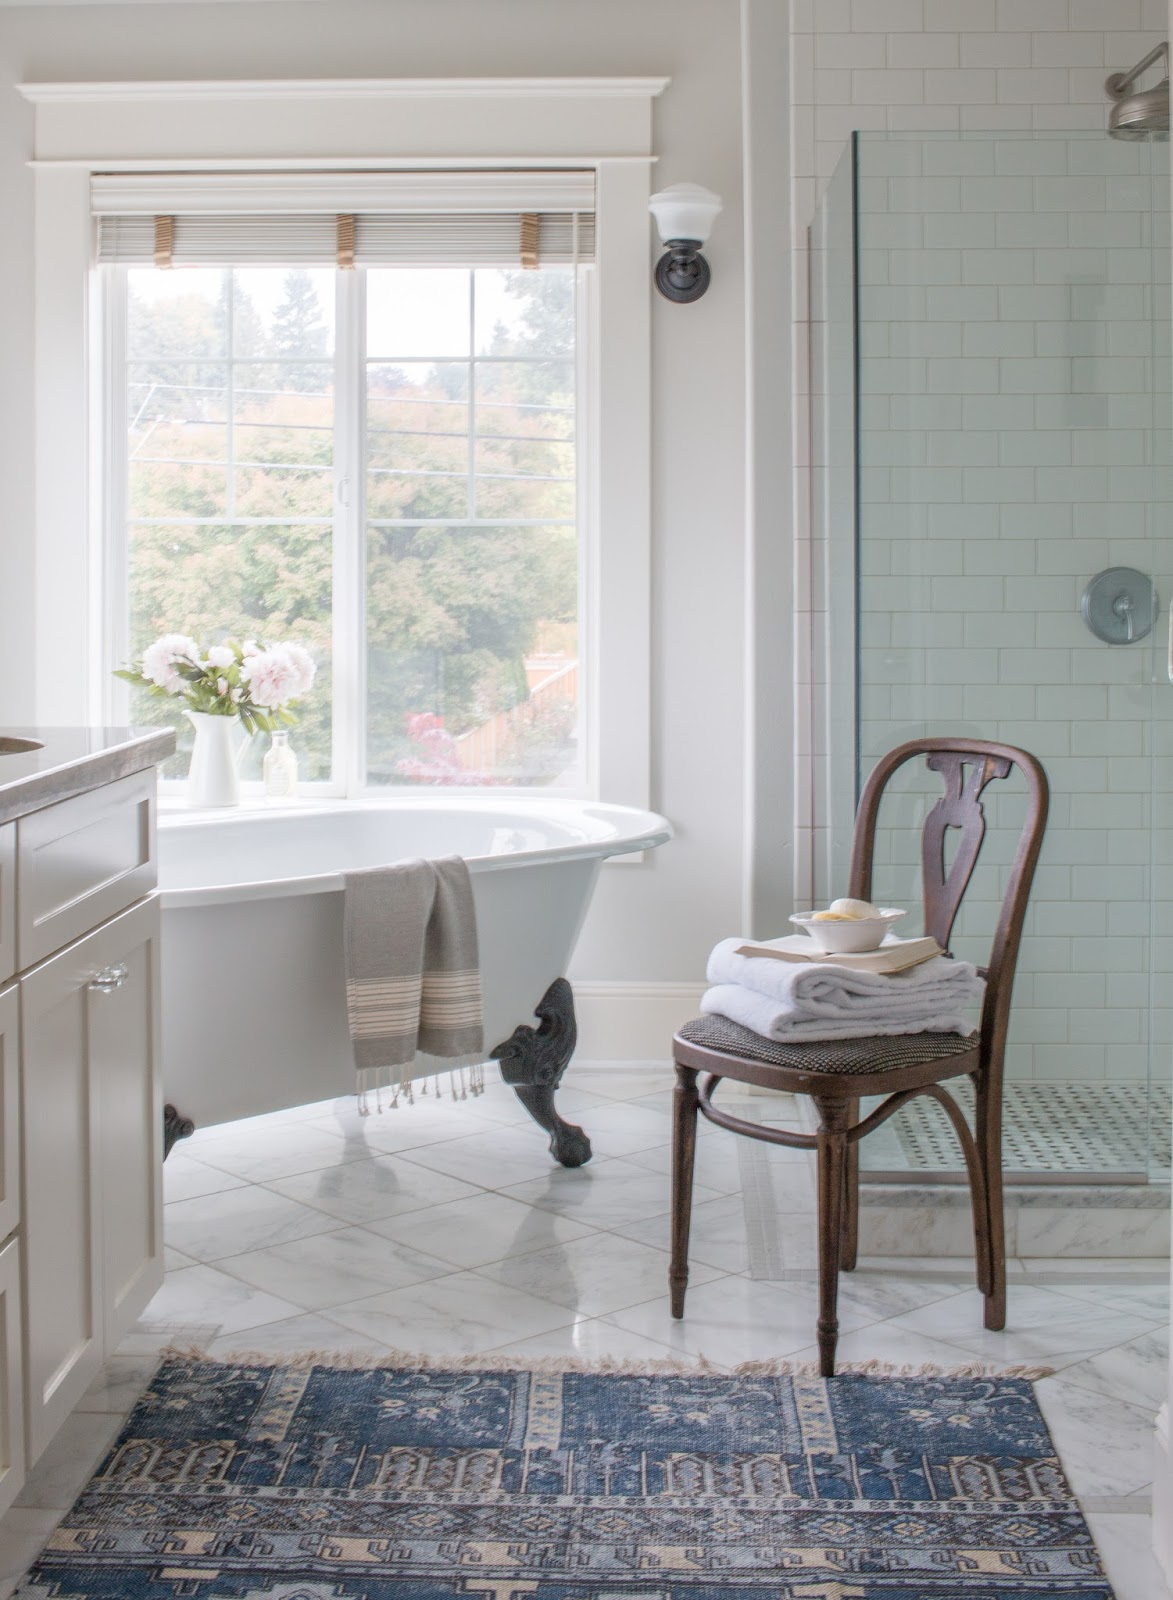 white clawfoot bathtub in bathroom with marble tile and white vanity and blue area rug